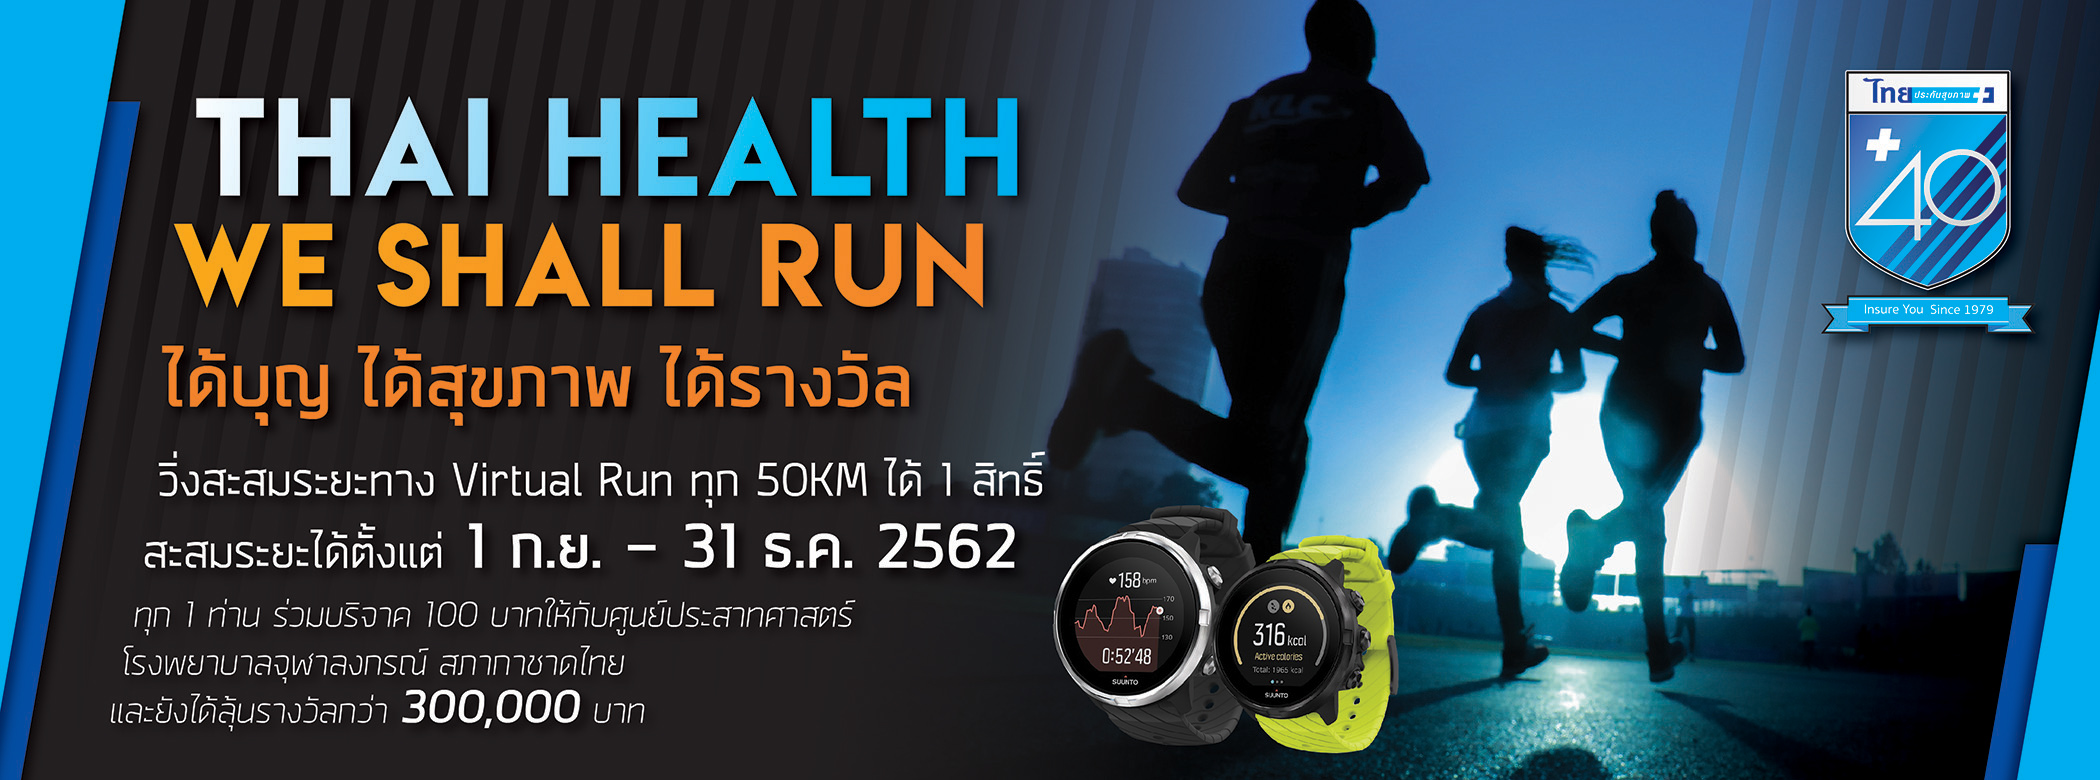 Thai Health - We Shall Run